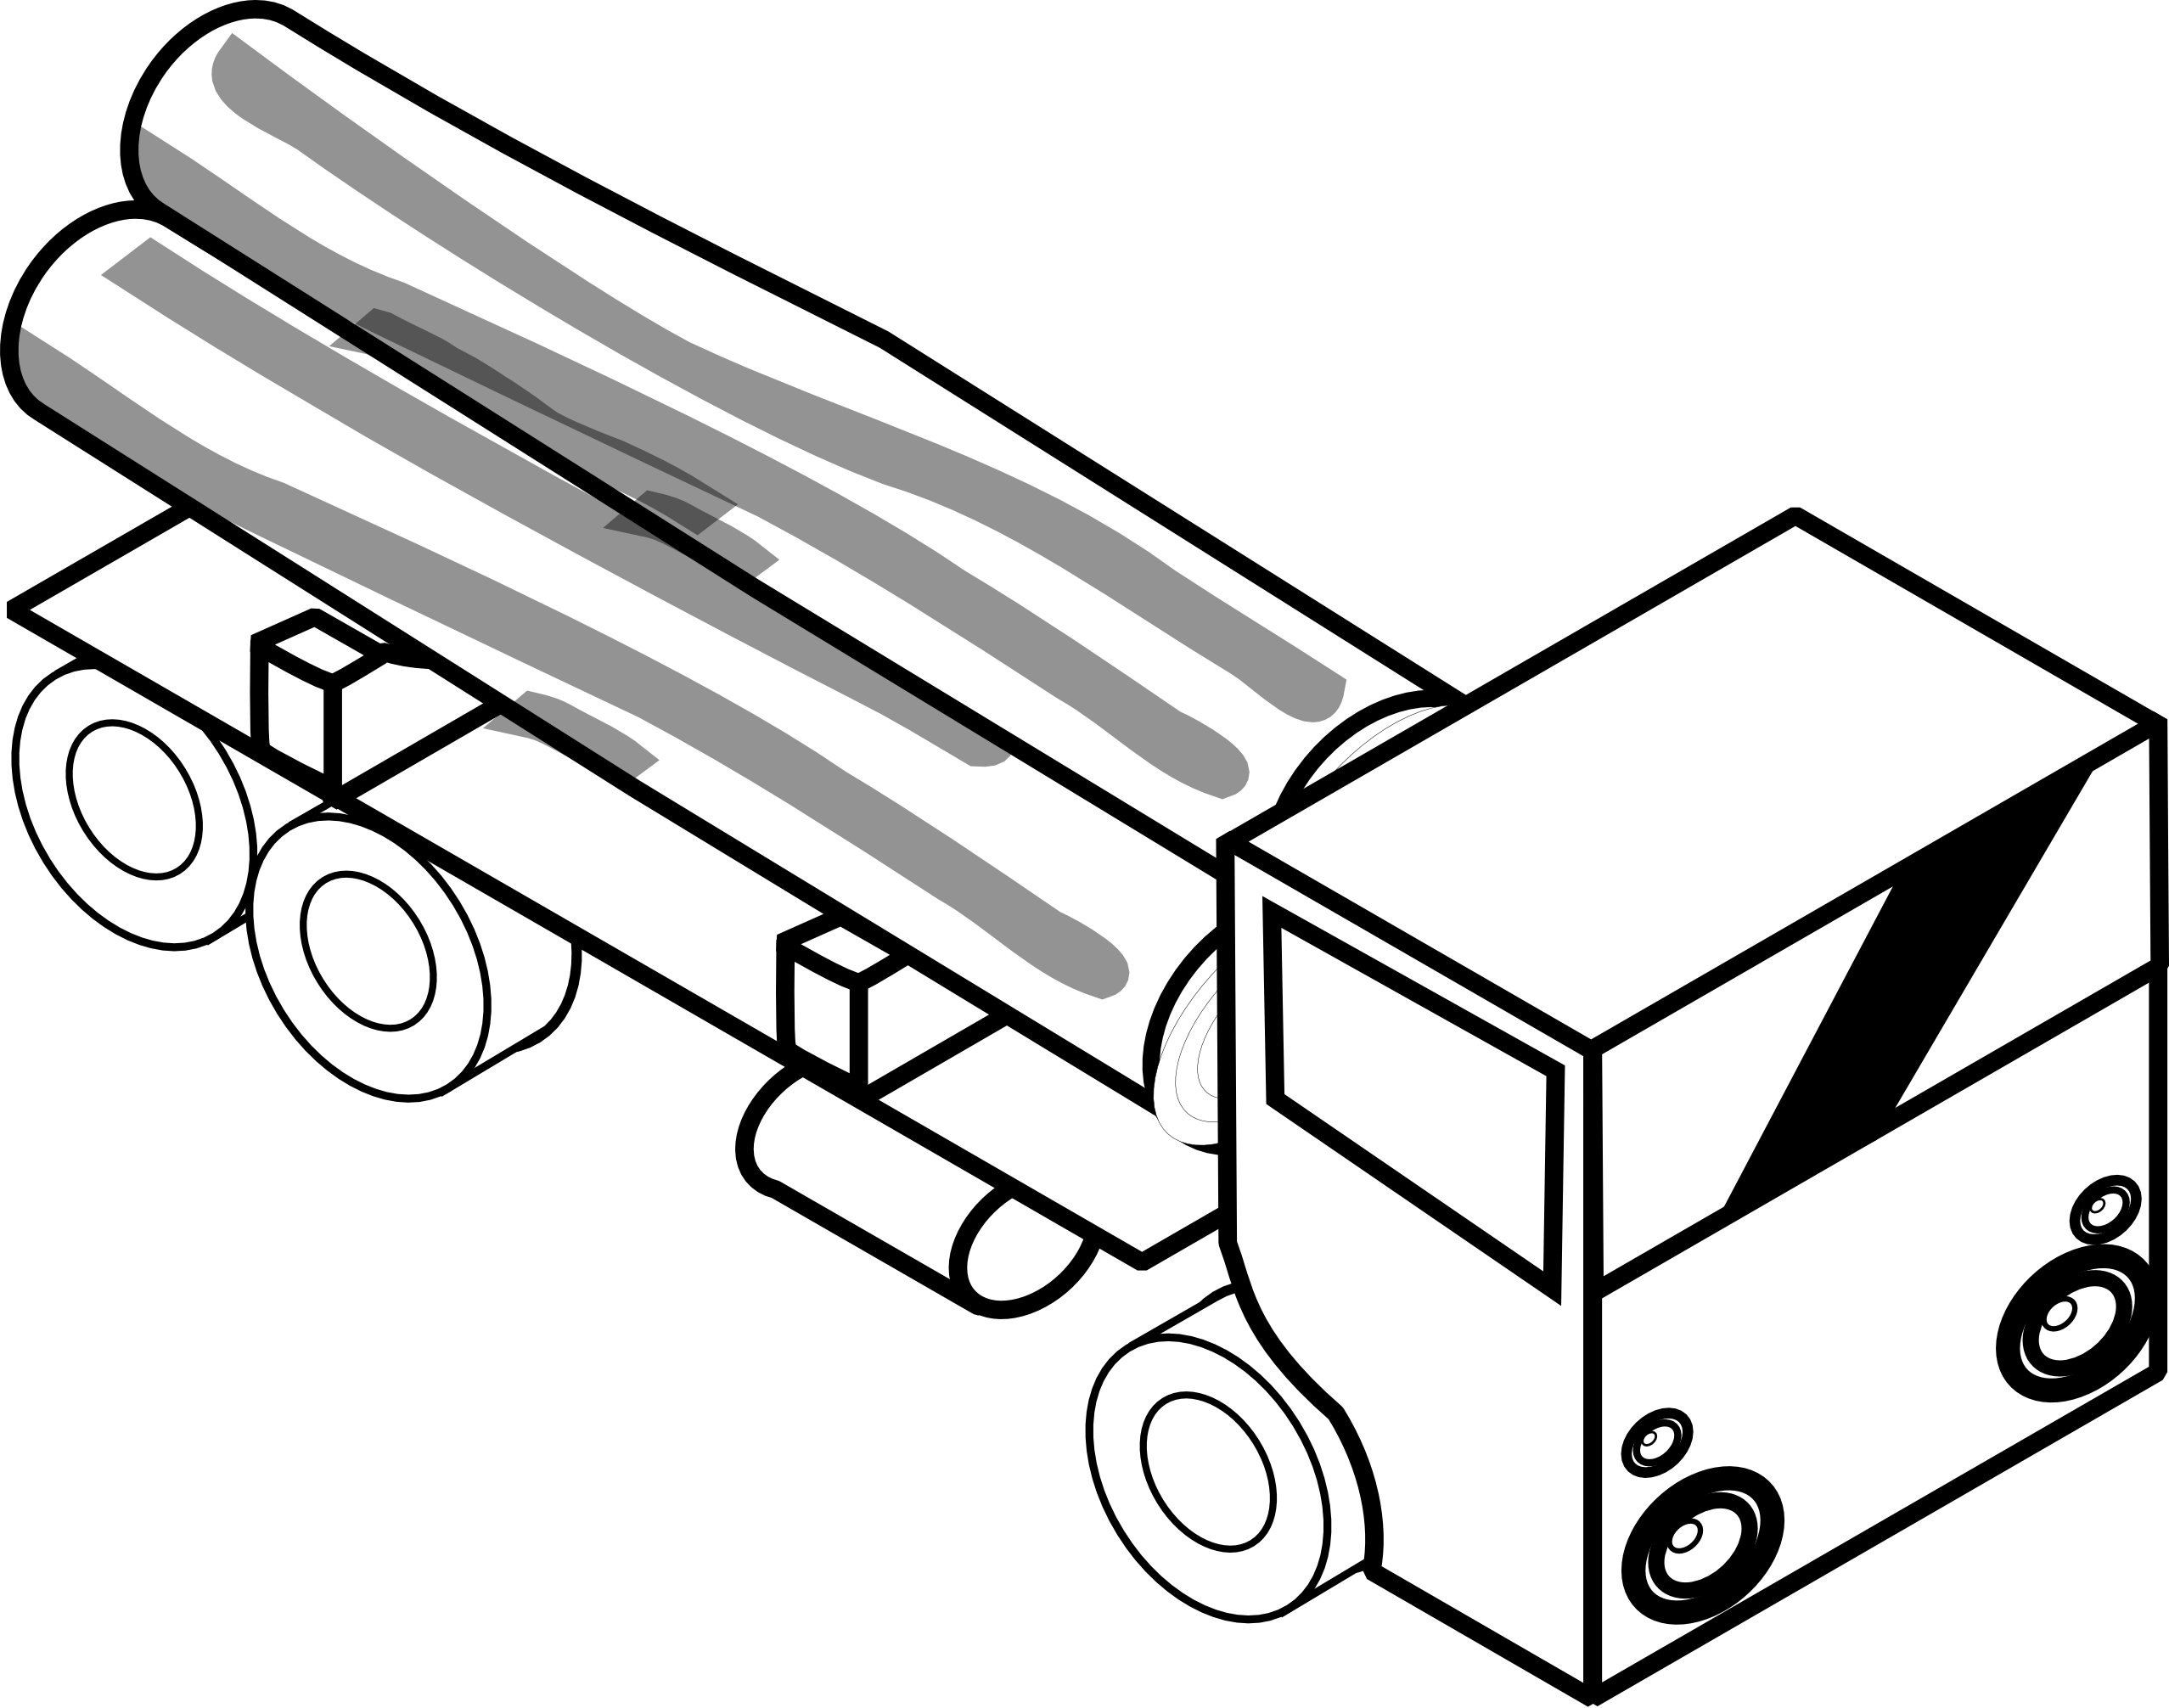 Fire Truck Clipart Black And White.